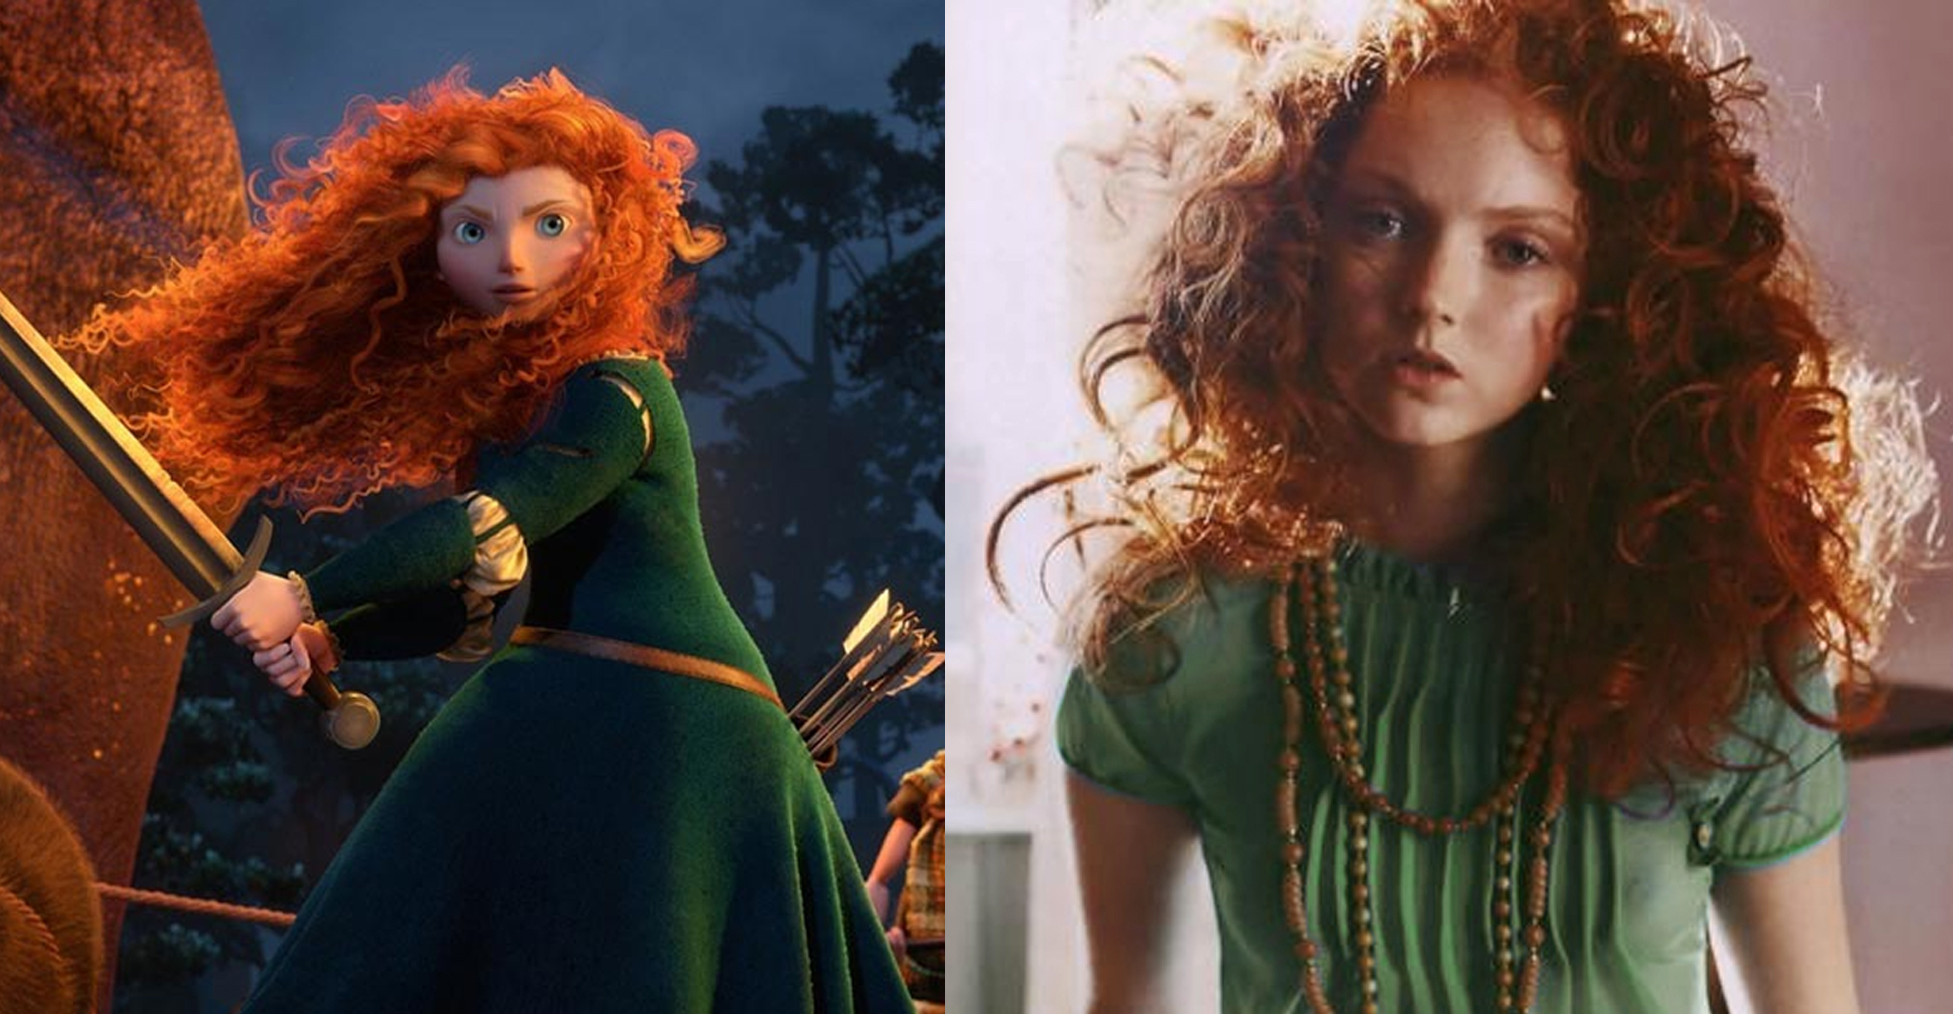 lily-cole-as-merida-brave2